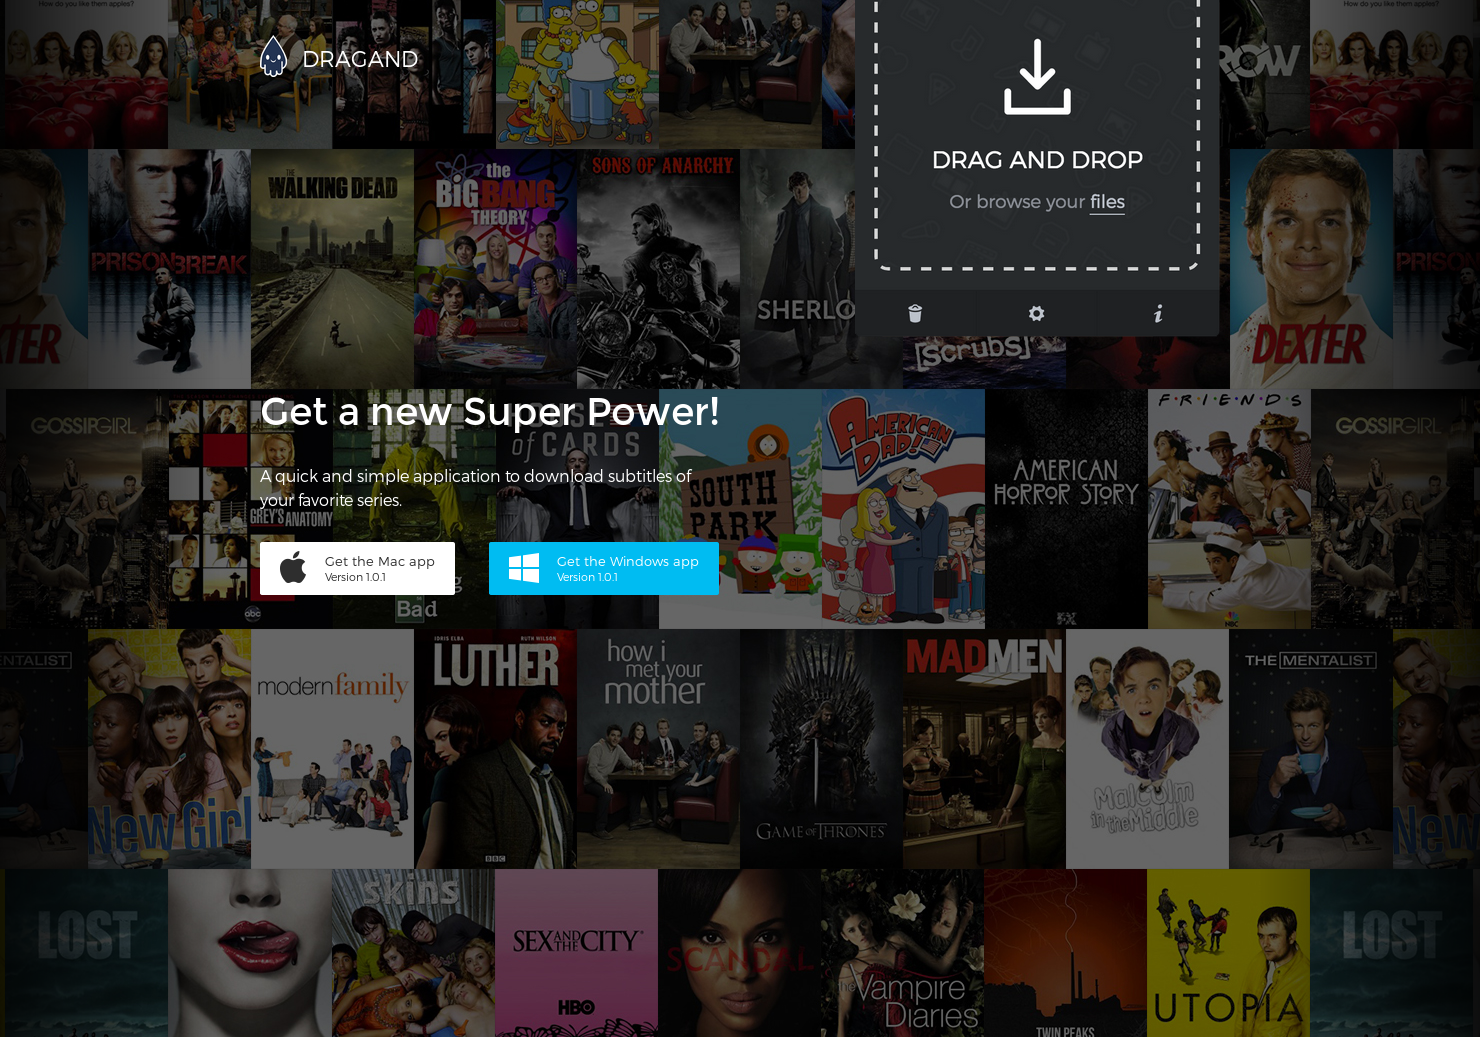 DRAGAND - Download subtitles for your favorite TV shows | Product